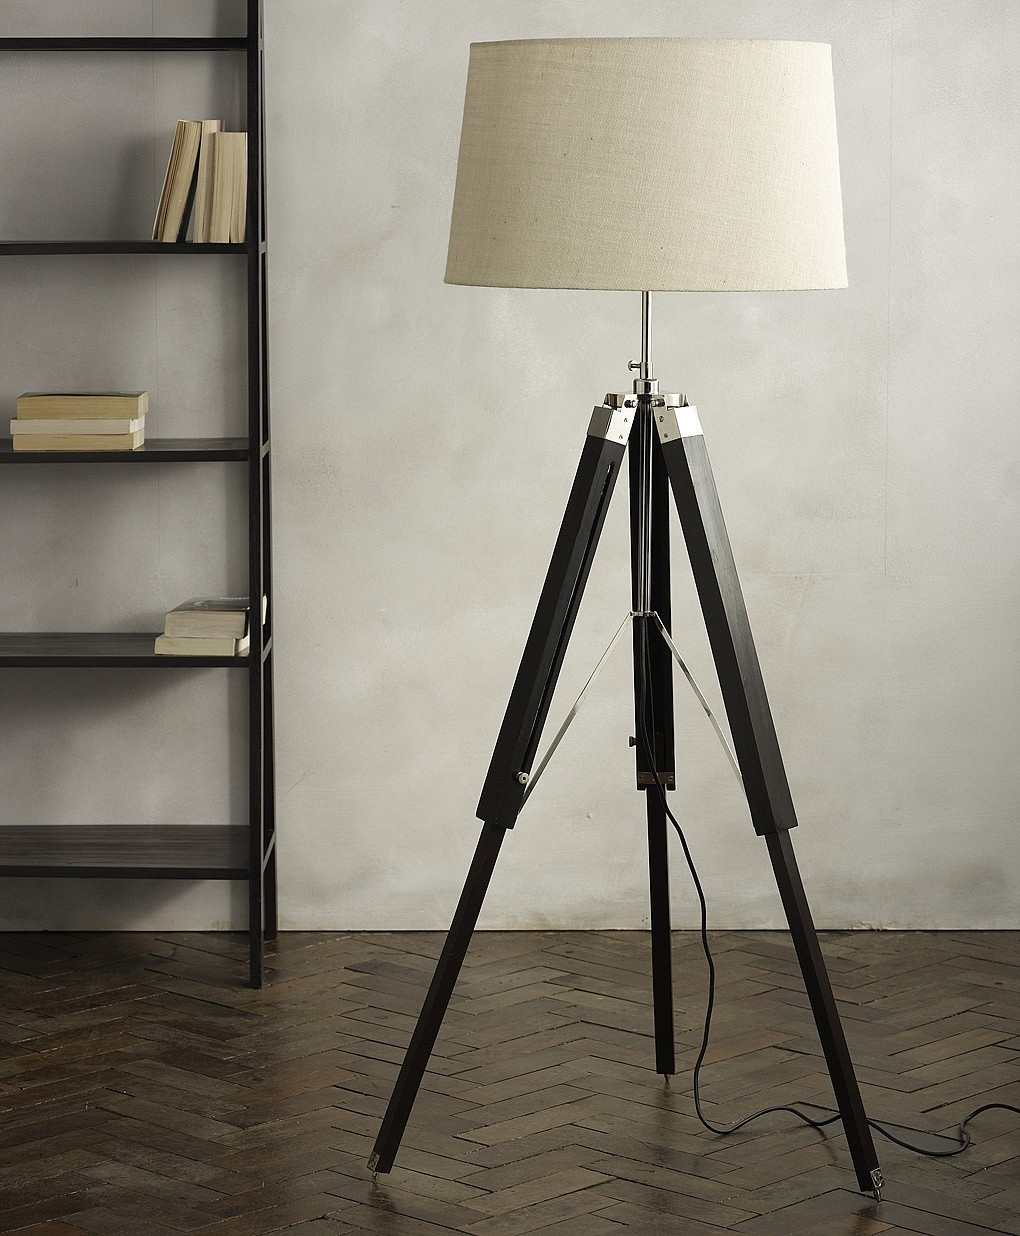 Inspiration about Tripod Floor Lamp Lamps For Bedroom Ideas On Favored Design Lighting For Rona Outdoor Wall Lighting (#14 of 15)